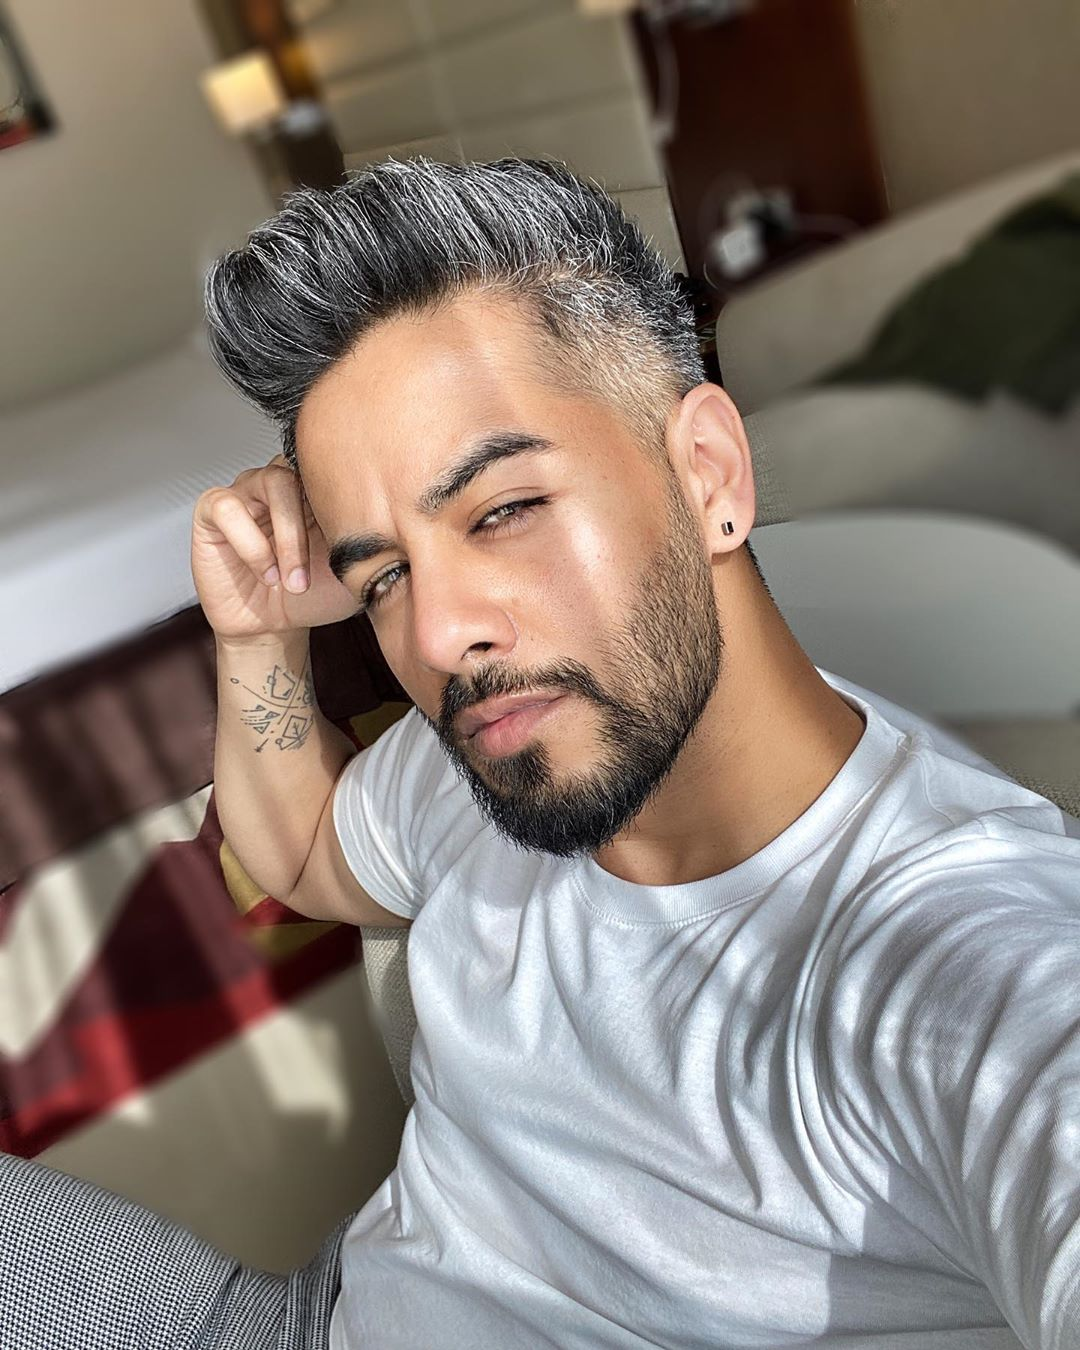 Salt And Pepper Hair Grooming Dos And Don Ts You Need To Know